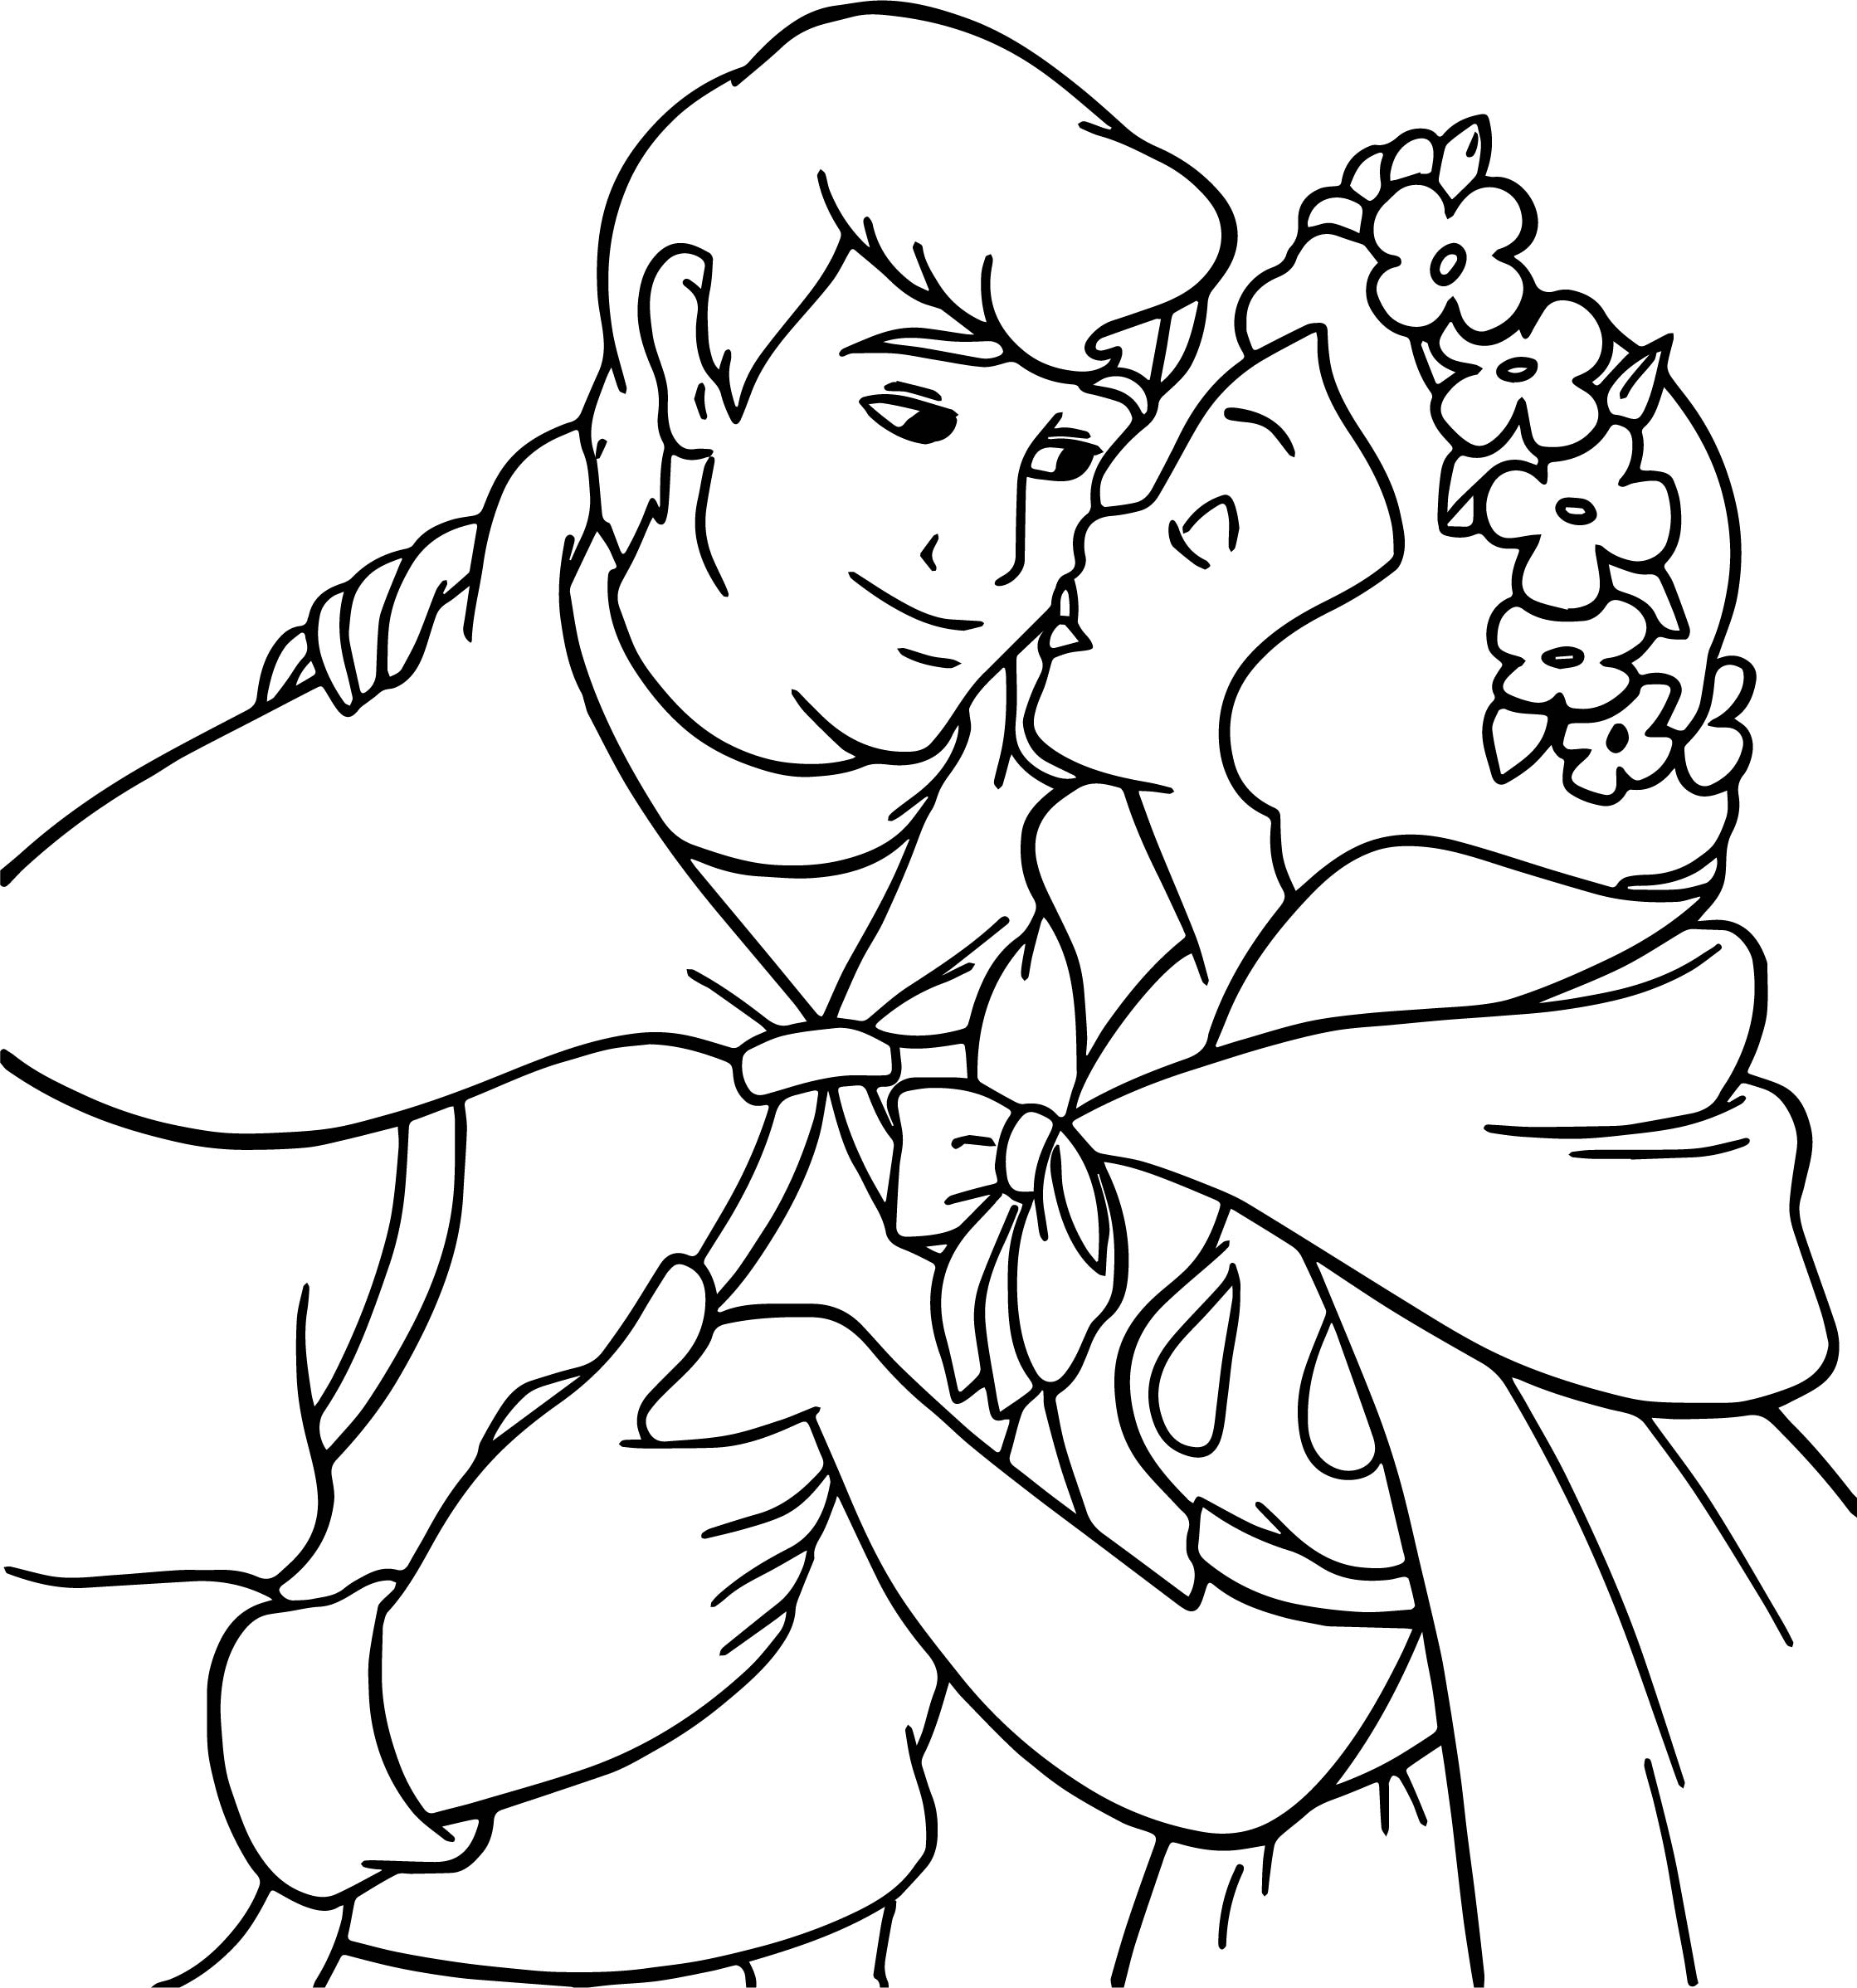 snow white and the kiss prince coloring page wecoloringpage